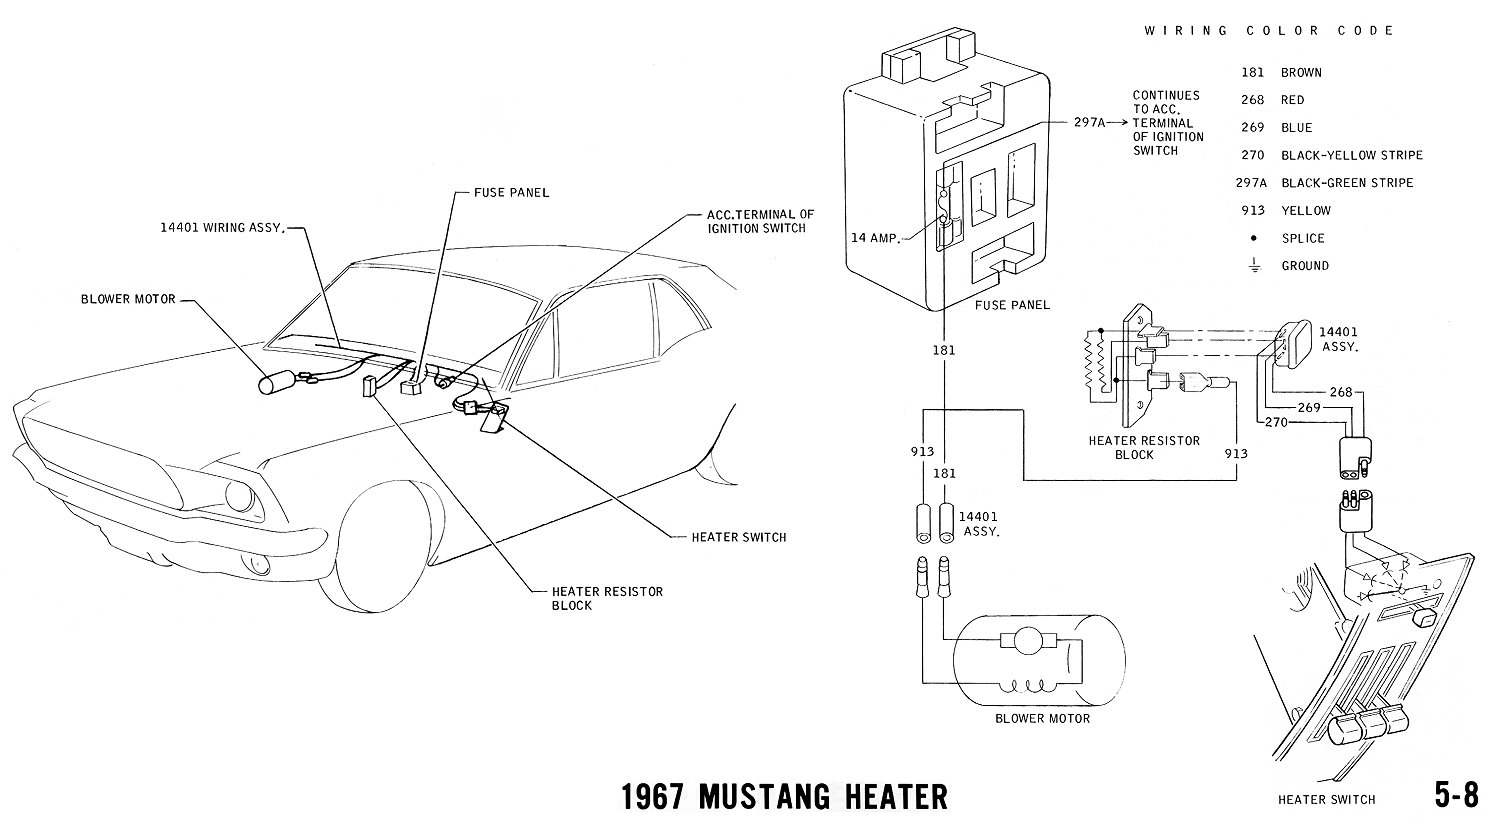 67 Ford Solenoid Wiring Diagram Library. 1967 Mustang Wiring And Vacuum Diagrams Average Joe Starter Solenoid Diagram 67. Ford. Ford Mustang Solenoid Wiring Diagram At Scoala.co